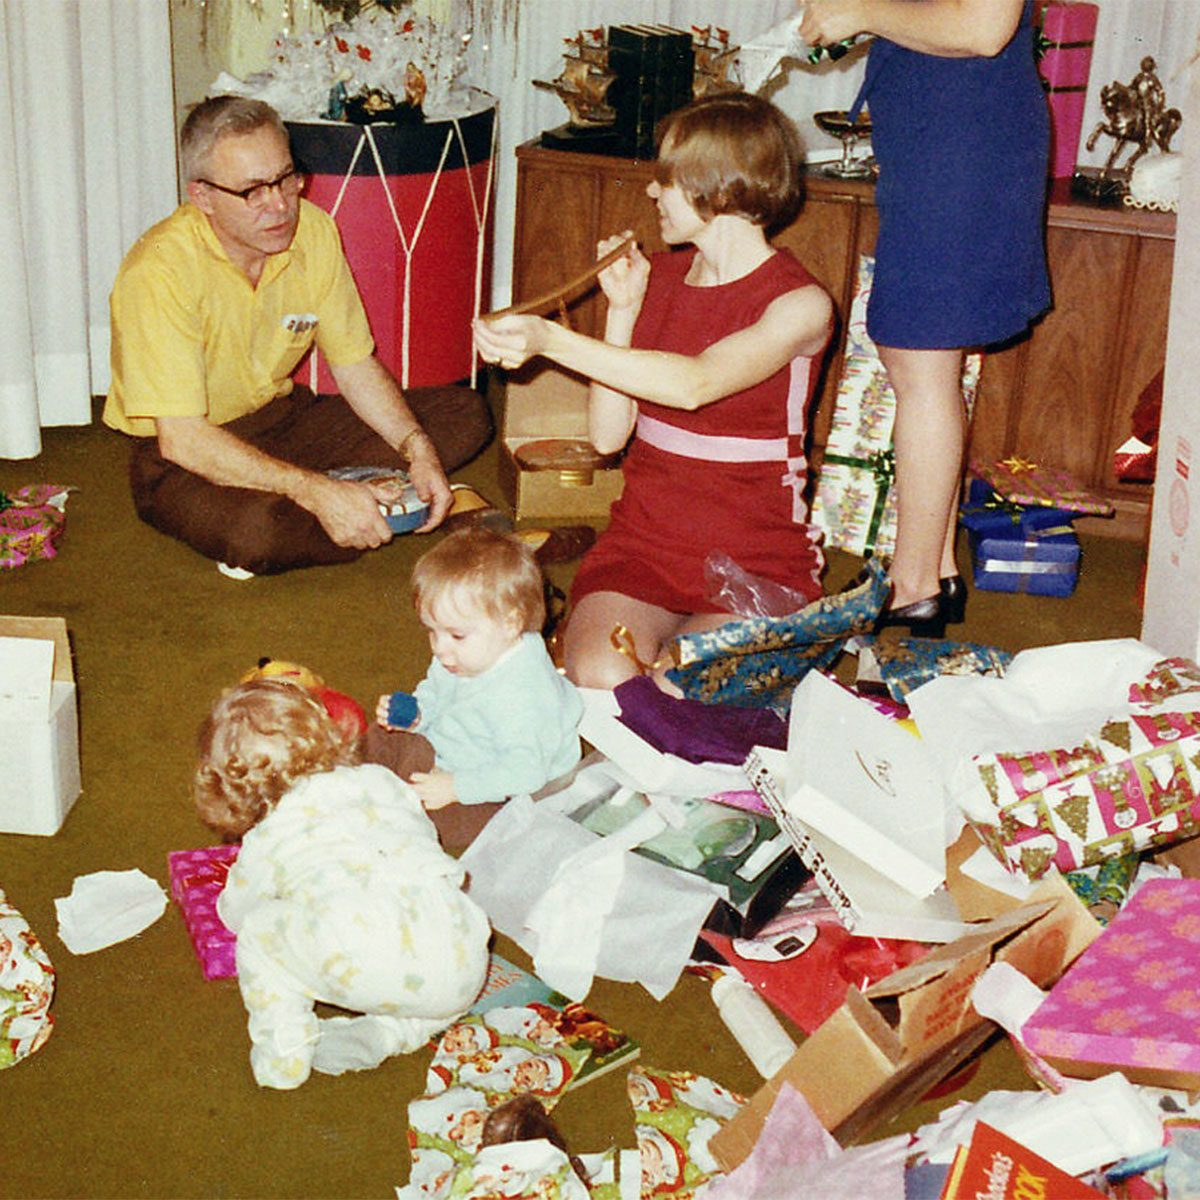 Family opening presents on Christmas Day